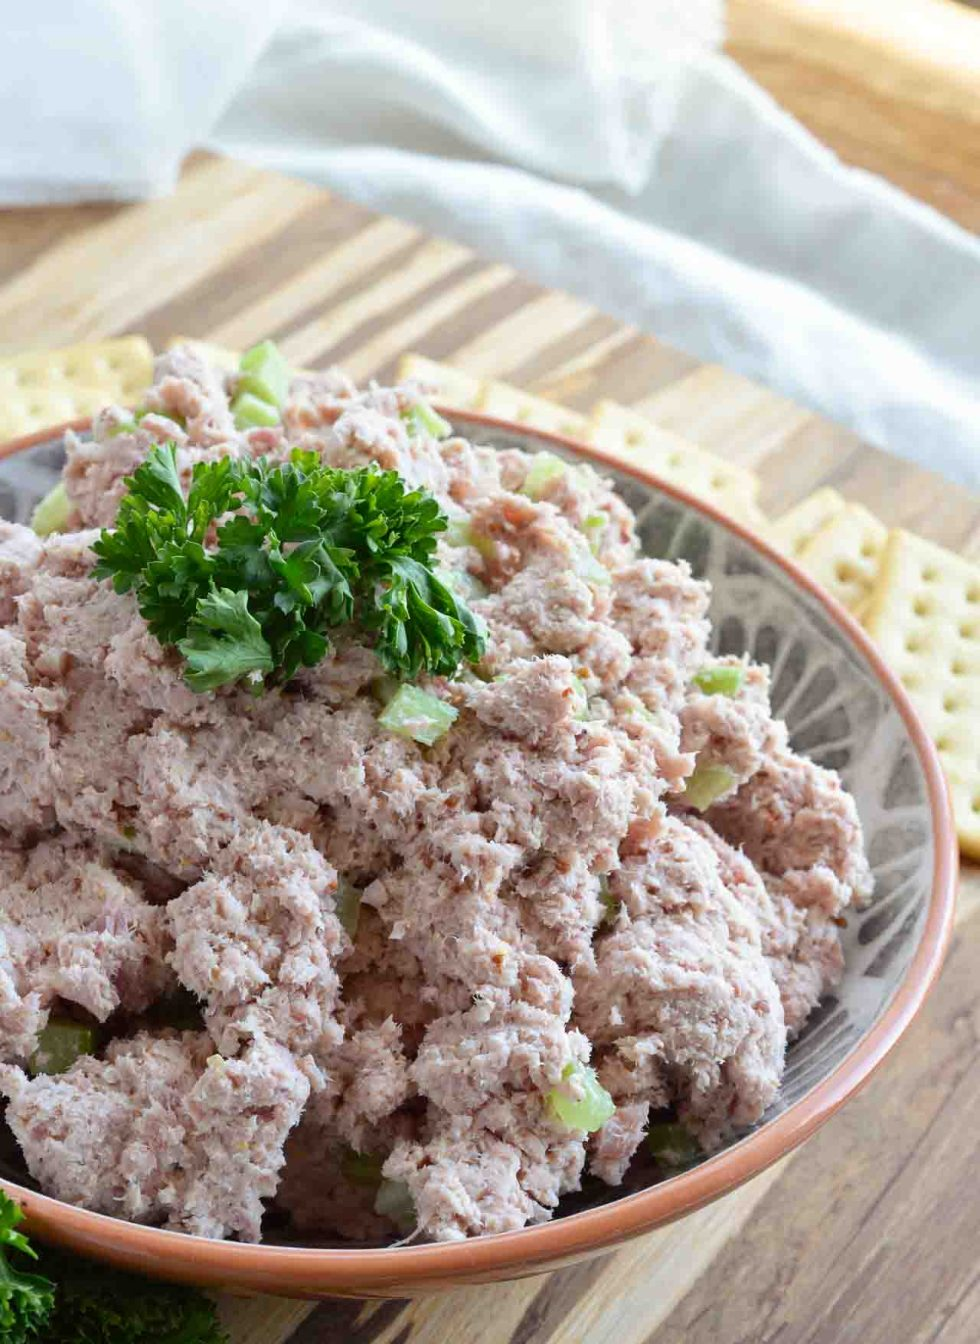 If you have leftover holiday ham, use it up in this Deviled Ham Recipe. Yes . . . spreadable ham dip! It may not be the prettiest but it makes up for that in flavor.